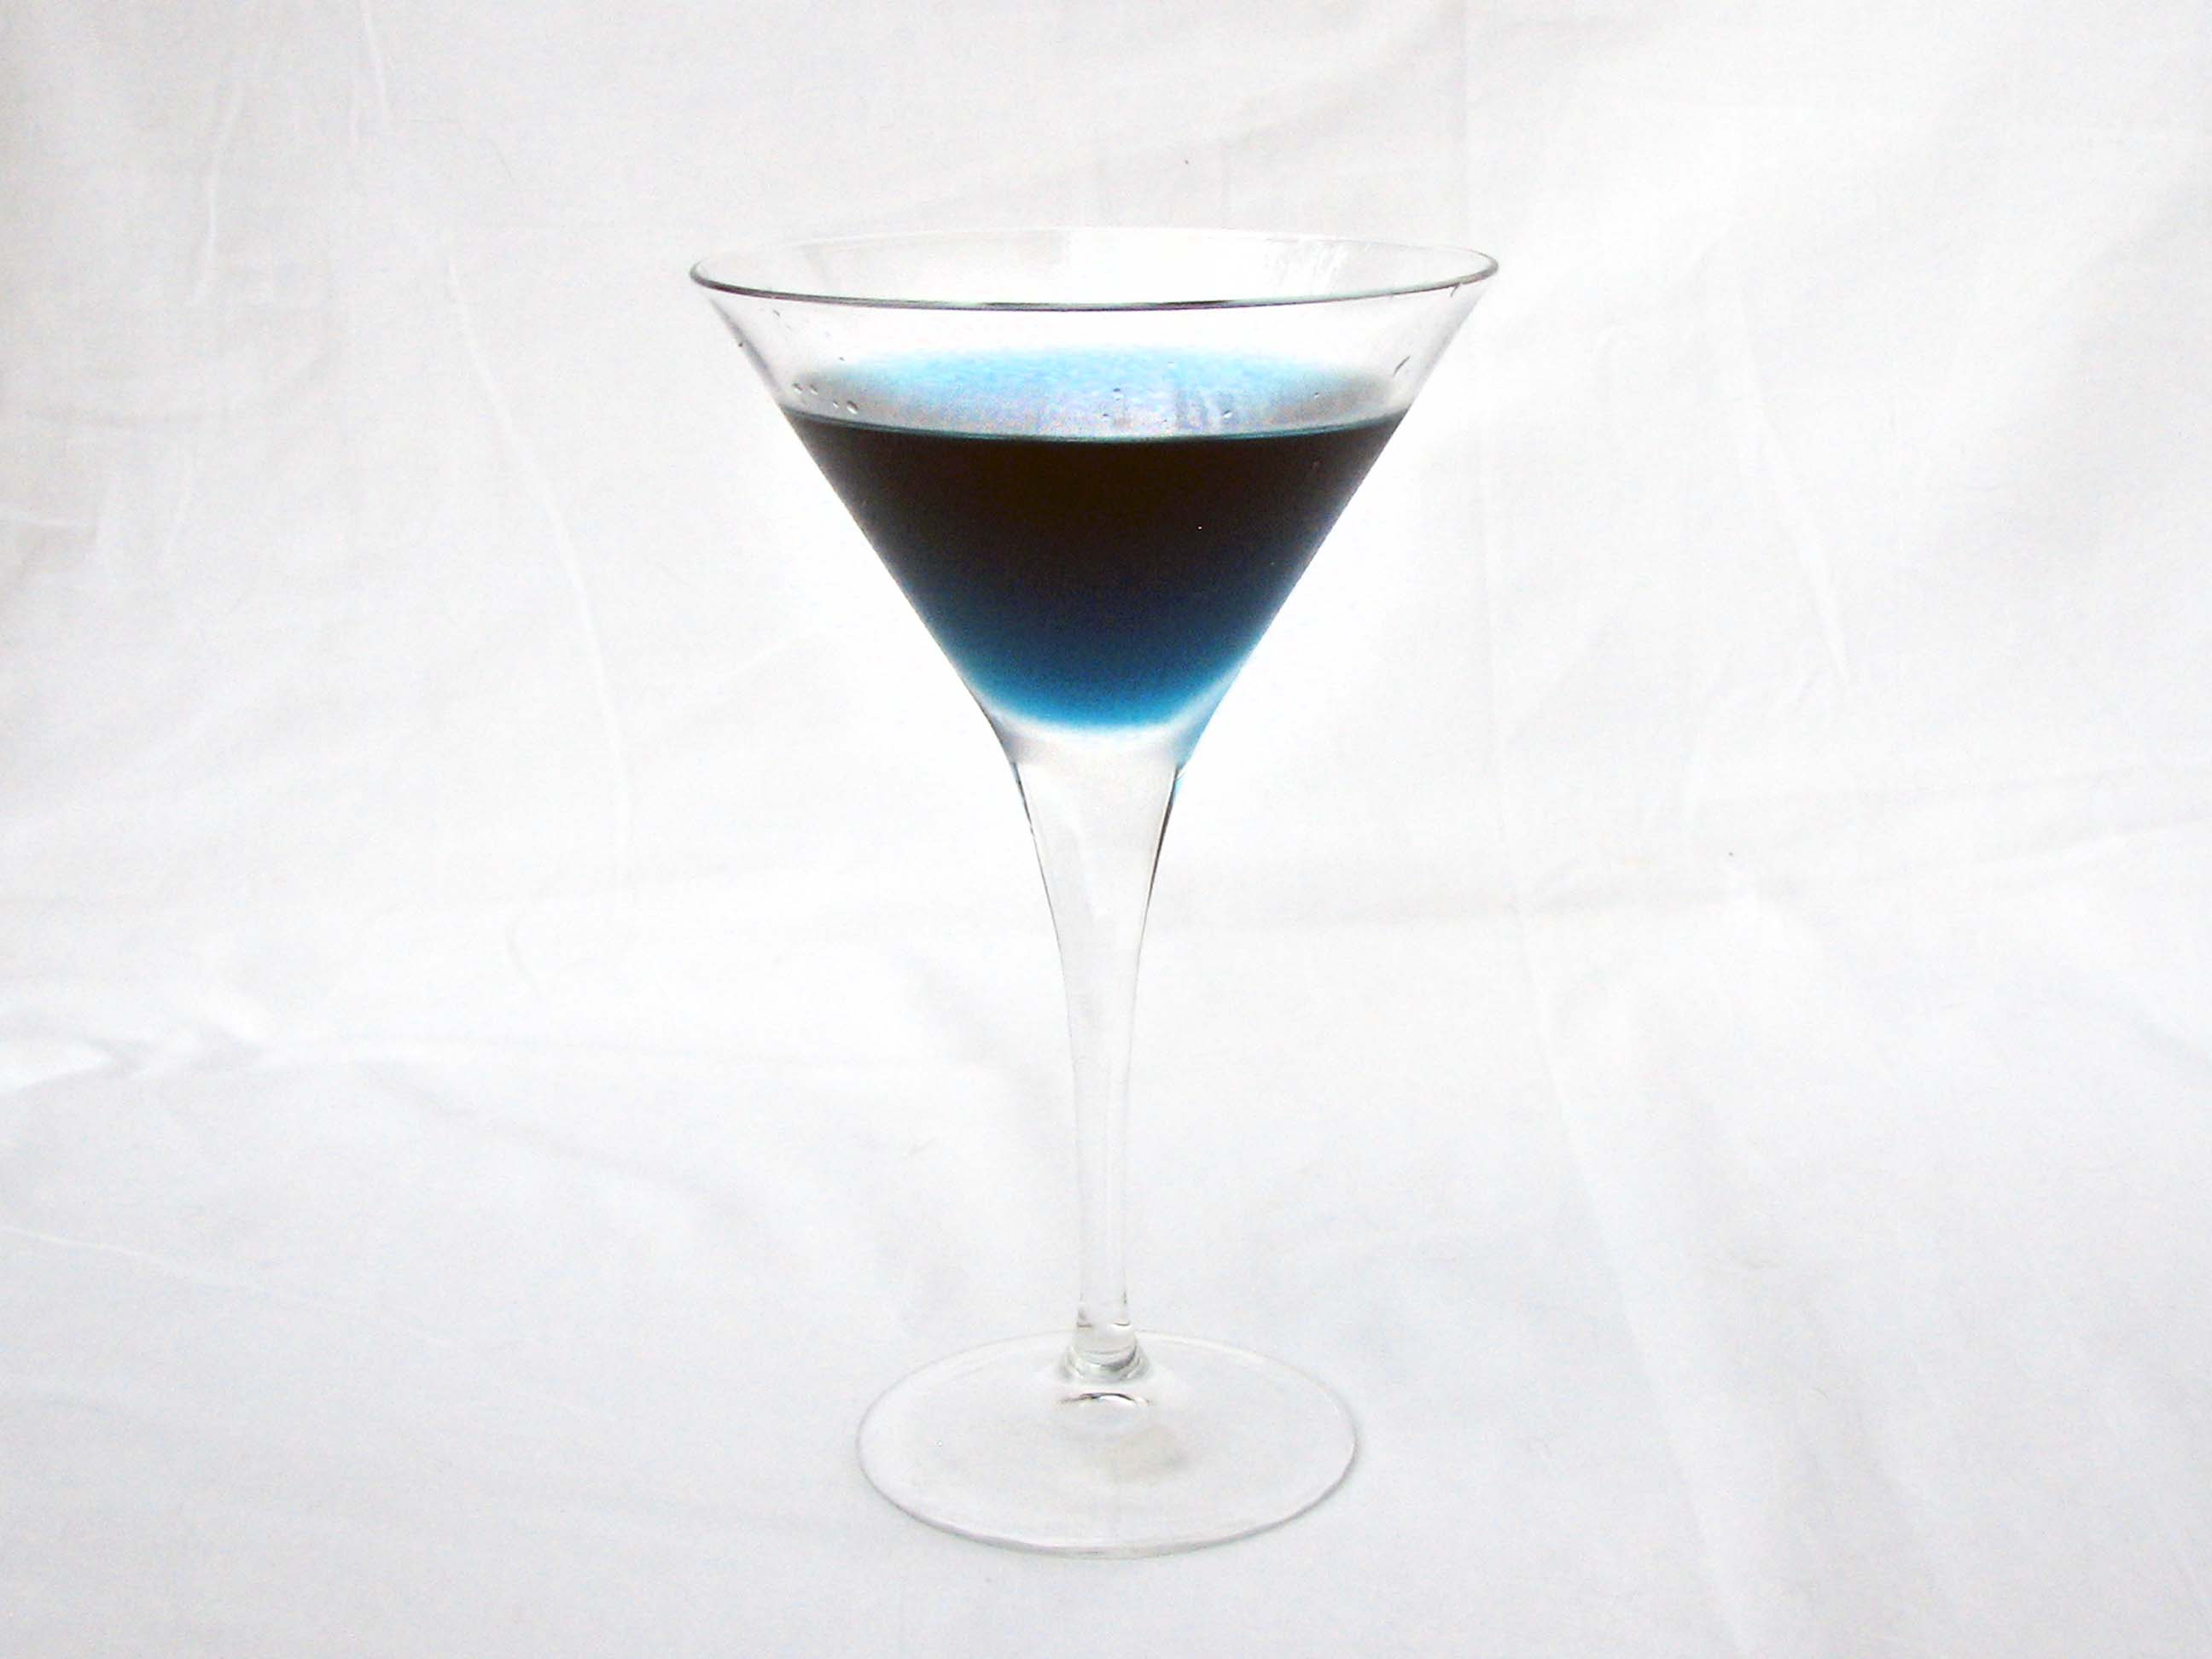 Picture of The Indigo Blush (My Recipe for a Color-Changing Cocktail)